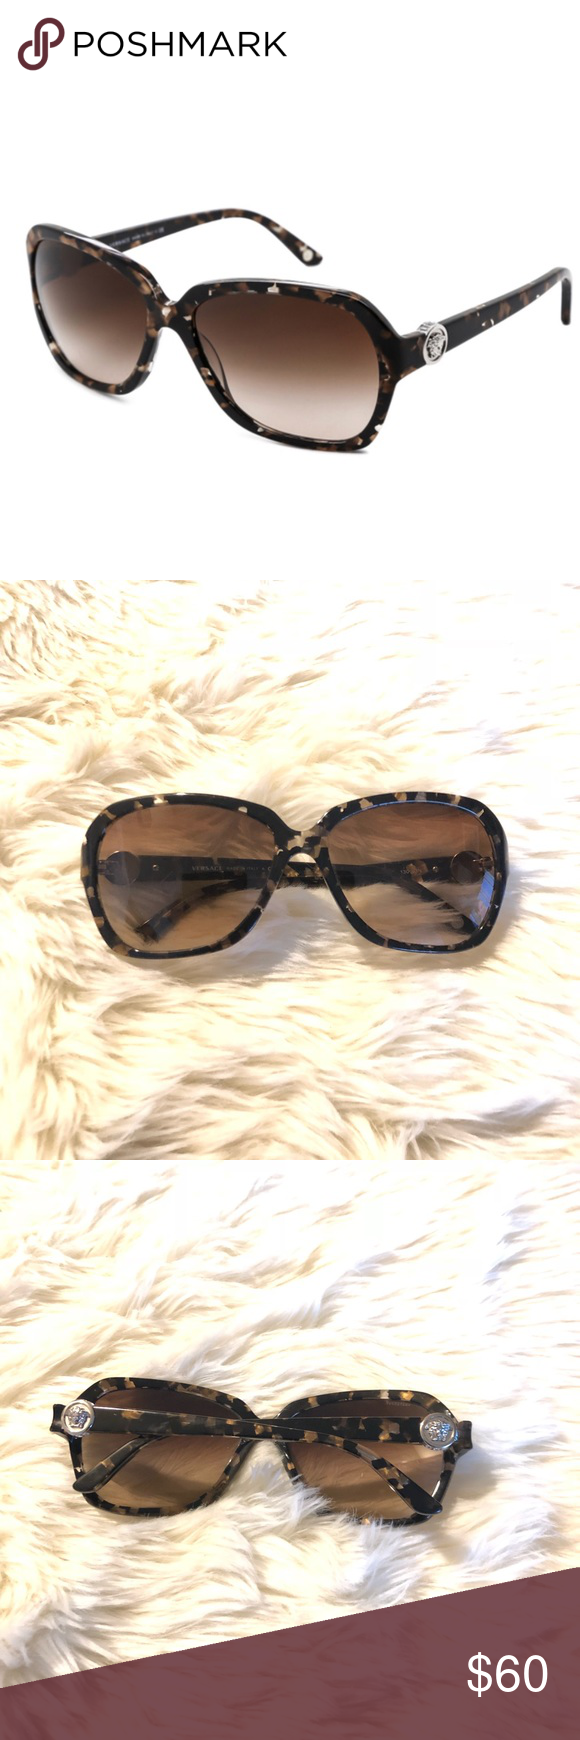 e8adeb75e2a4d Versace VE 4218B Sunglasses CONDITION  Gently Used Lens scratches ...